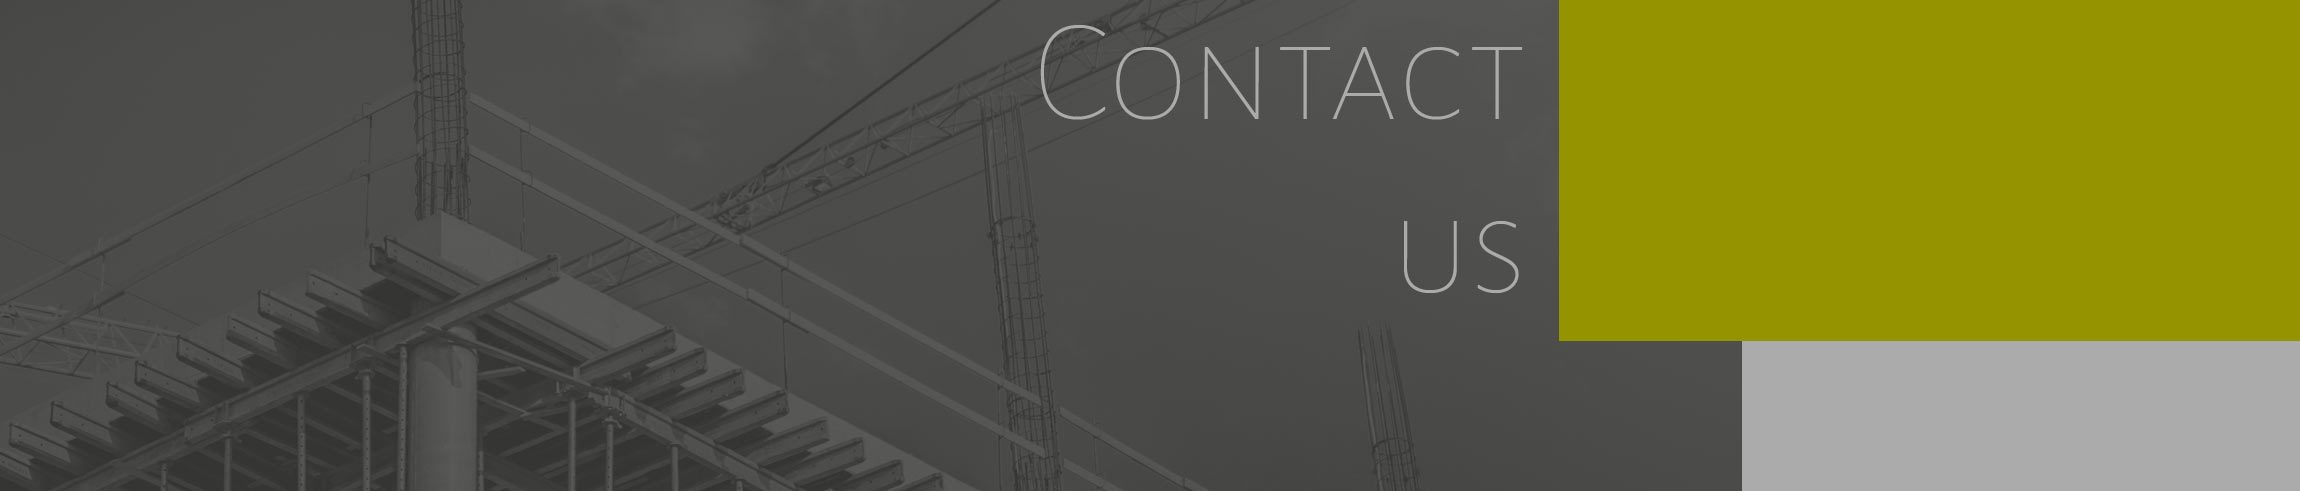 Contact us Header graphic